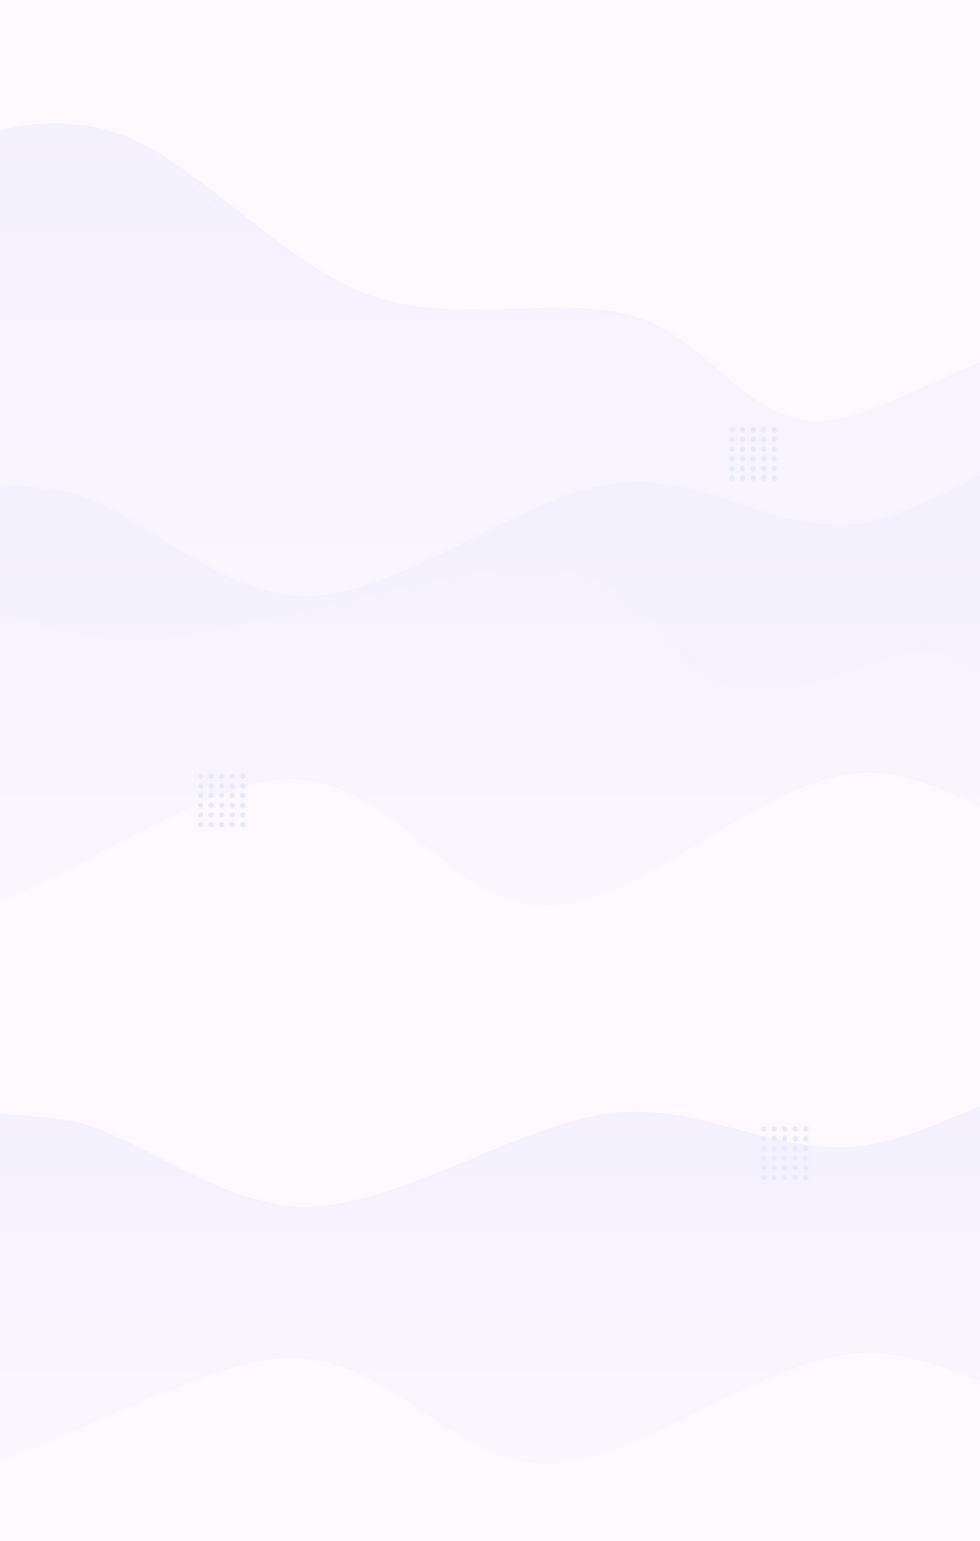 Feature Background 2.png